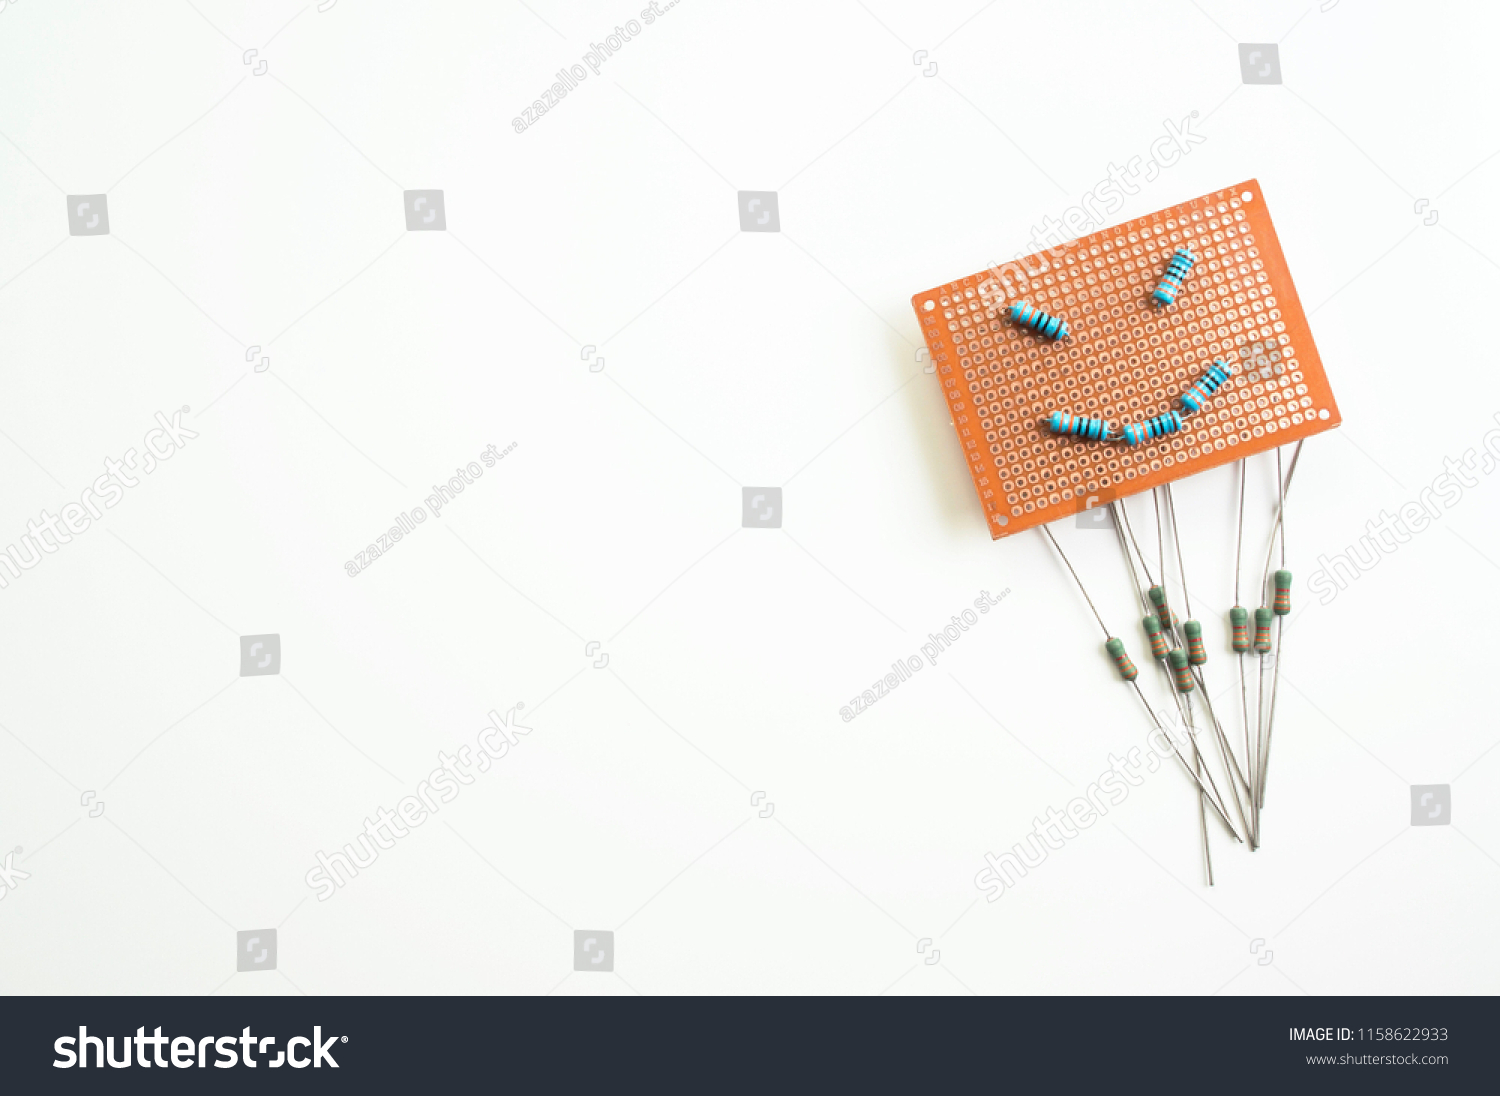 Blank Circuit Board Breadboard Emoji Face Stock Photo Edit Now Boards With Clock Hands Royalty Free Image Shape